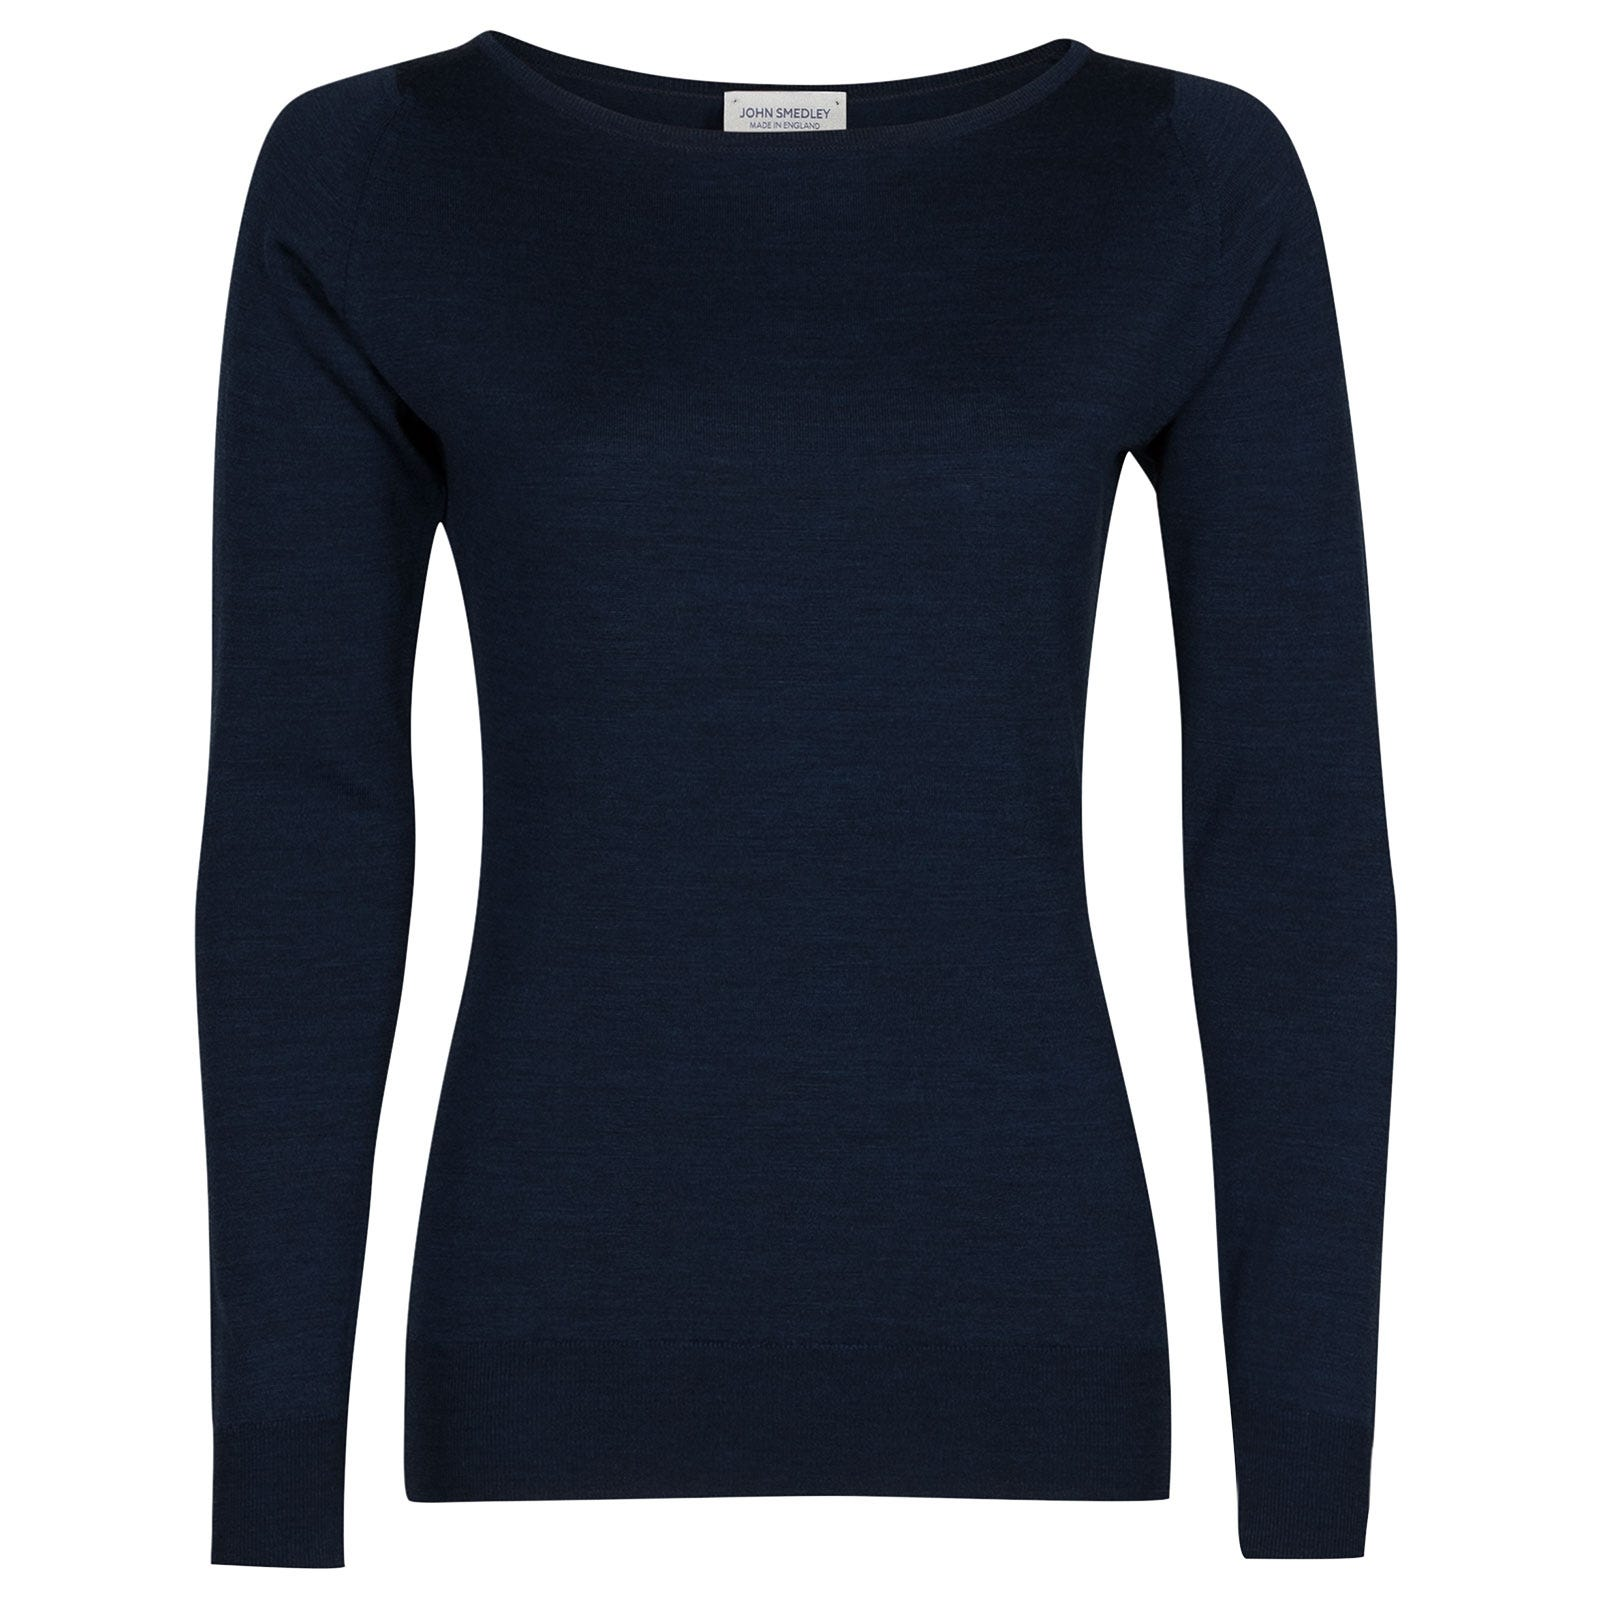 John Smedley susan Merino Wool Sweater in Indigo-XL